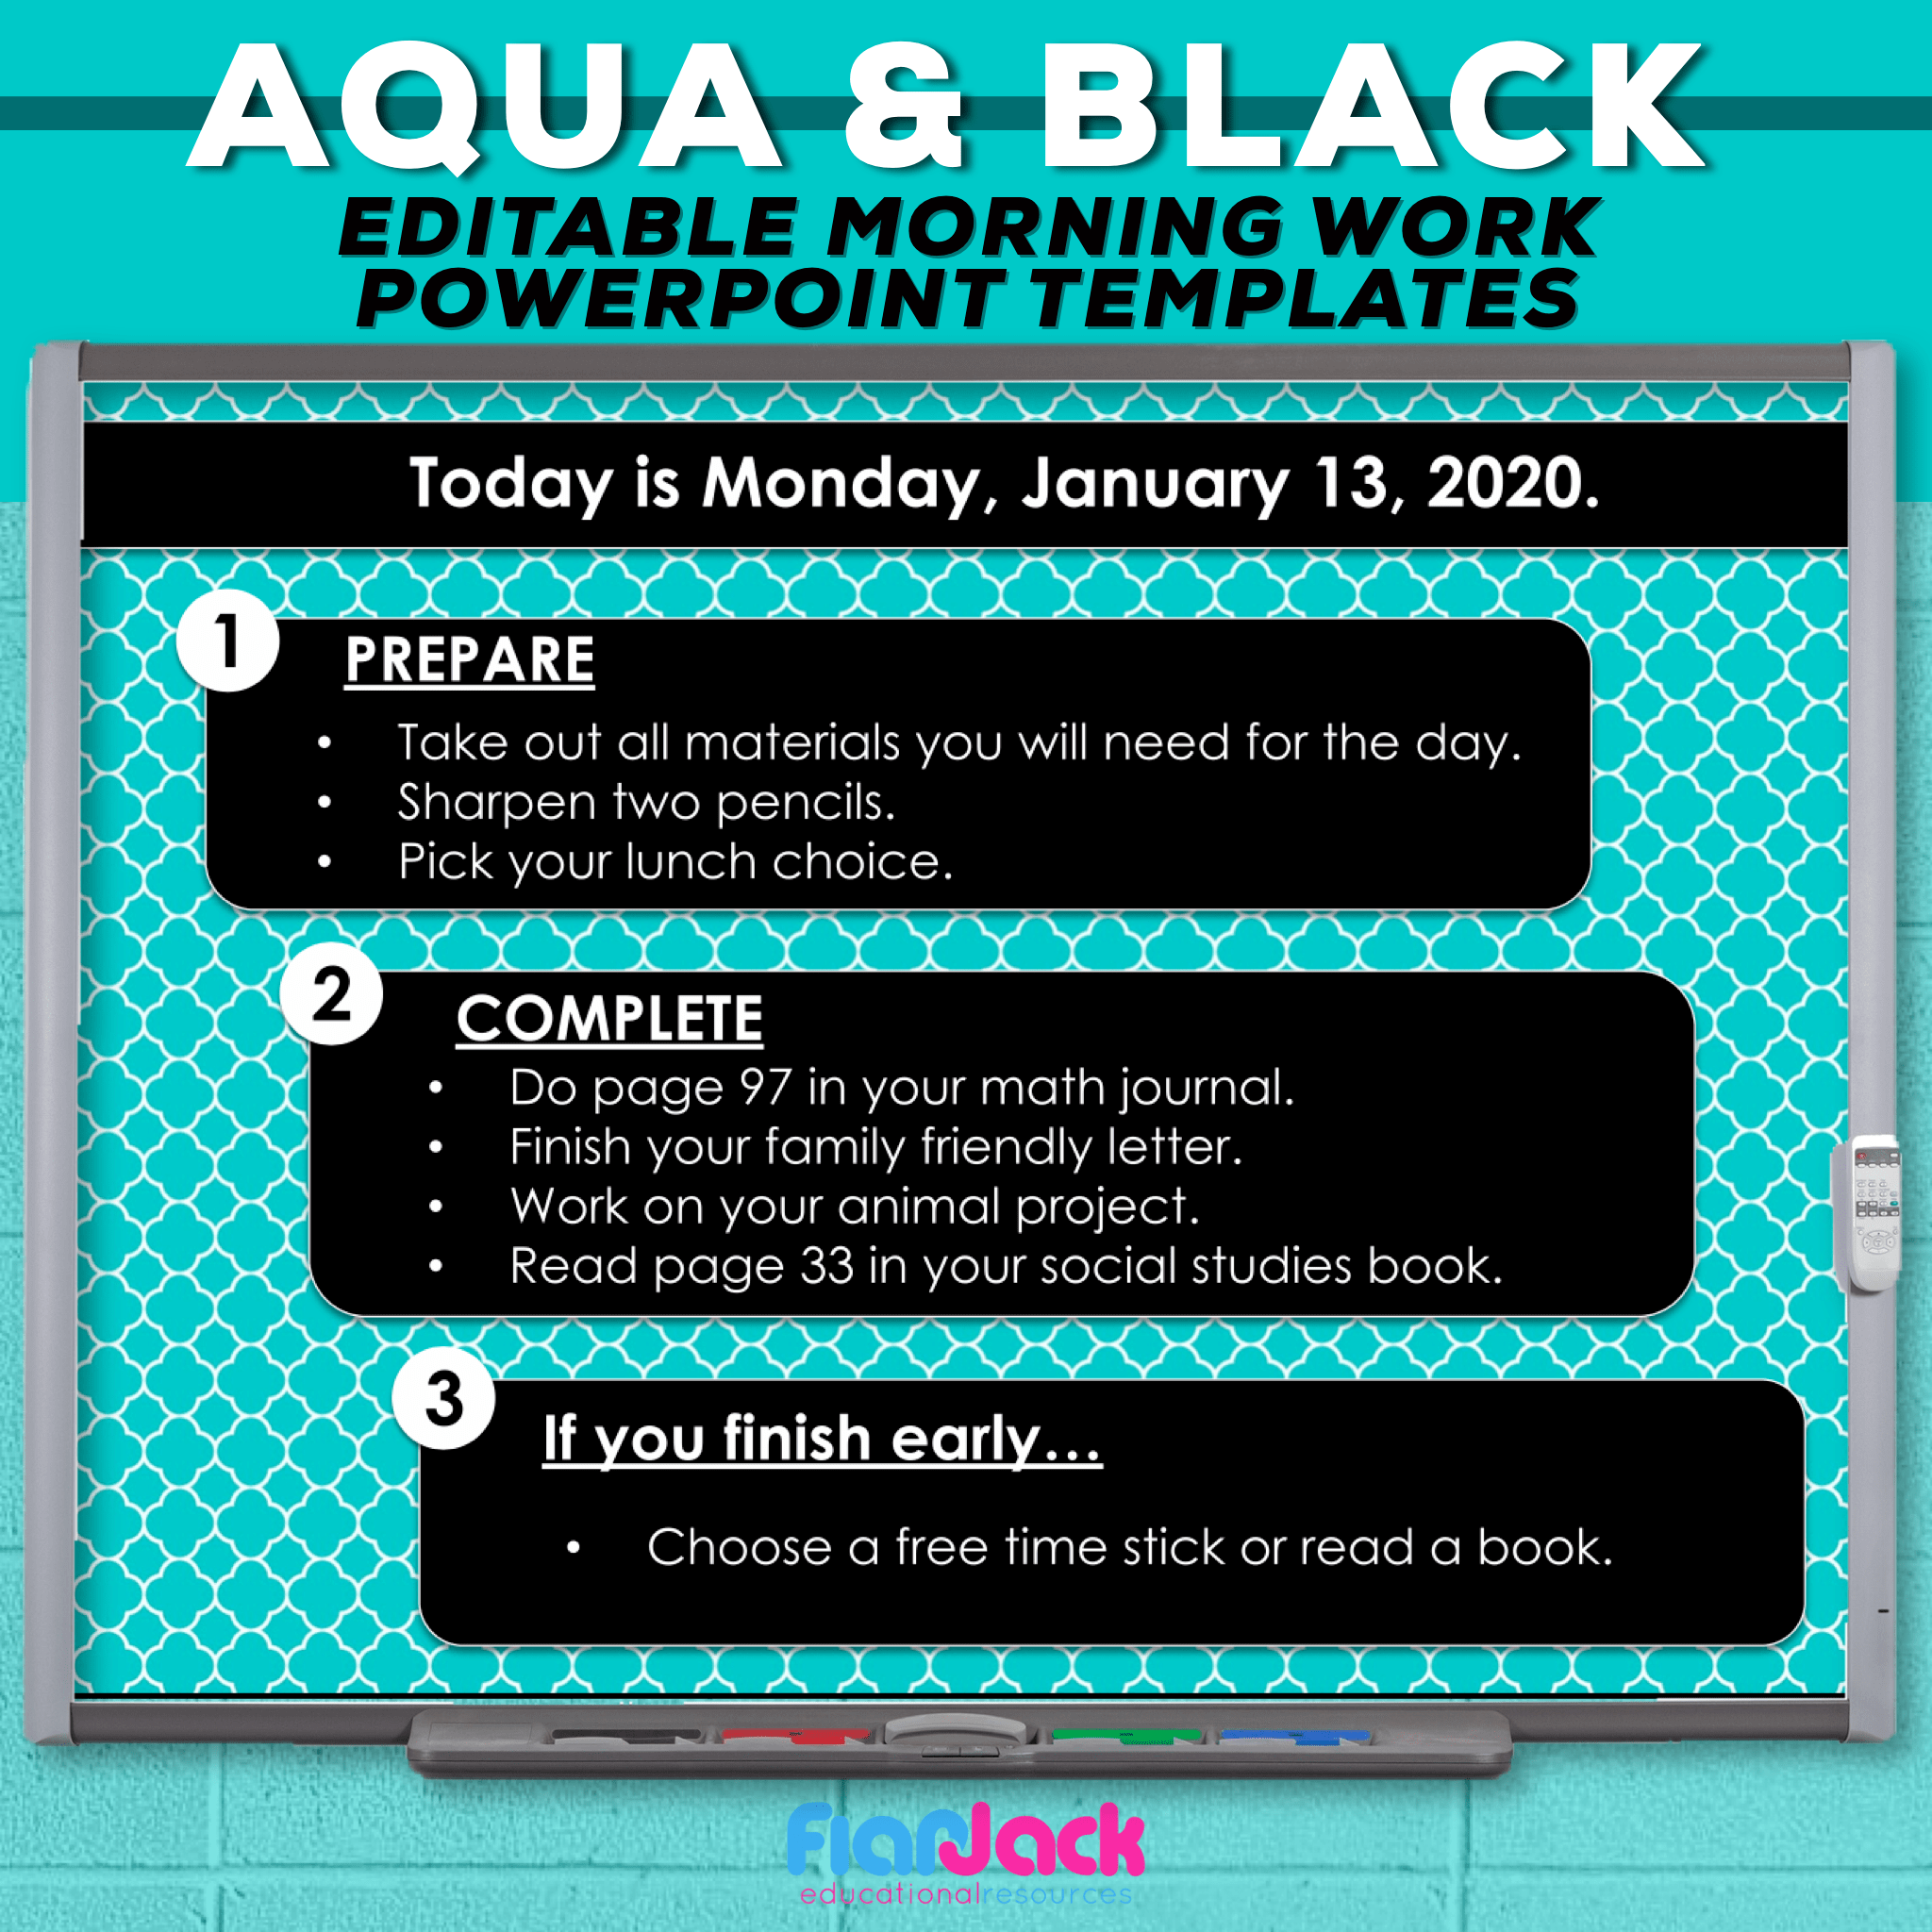 Editable PowerPoint Templates | Aqua and Black